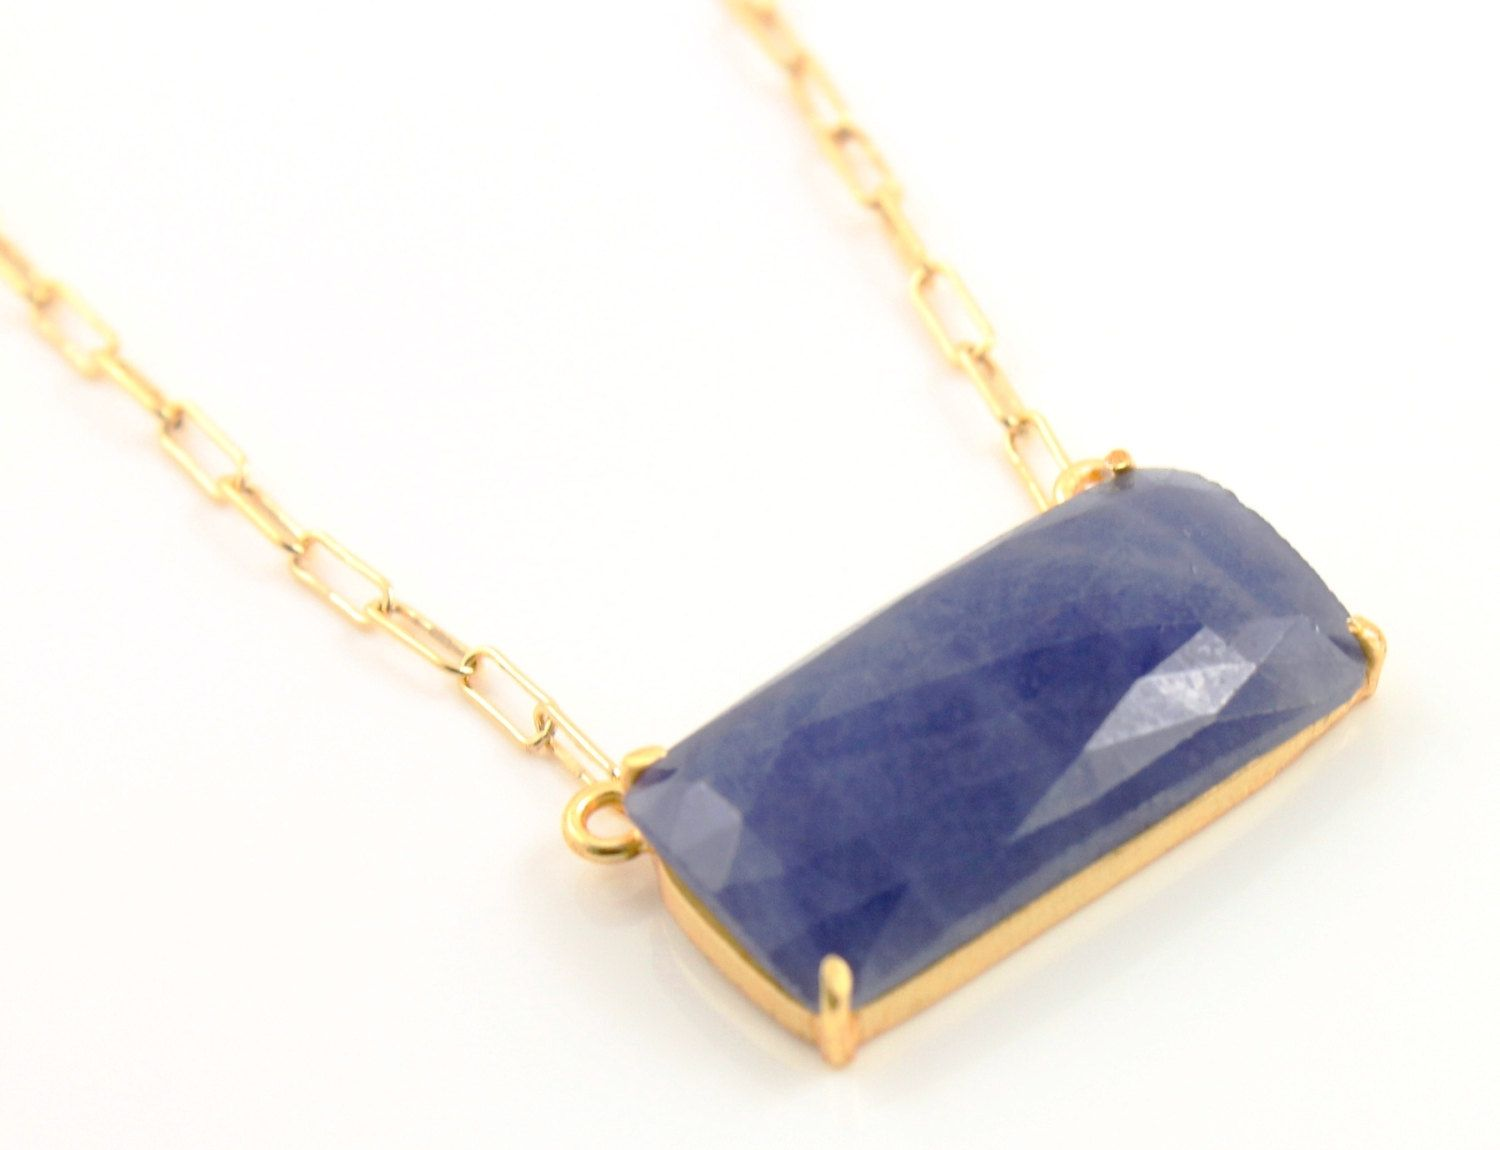 Natural Rose Cut Blue Sapphire Handcrafted & Prong Set in Sterling Silver w/ 24k Gold Vermeil, Statement Necklace, (BKC/7042) by Beadspoint on Etsy